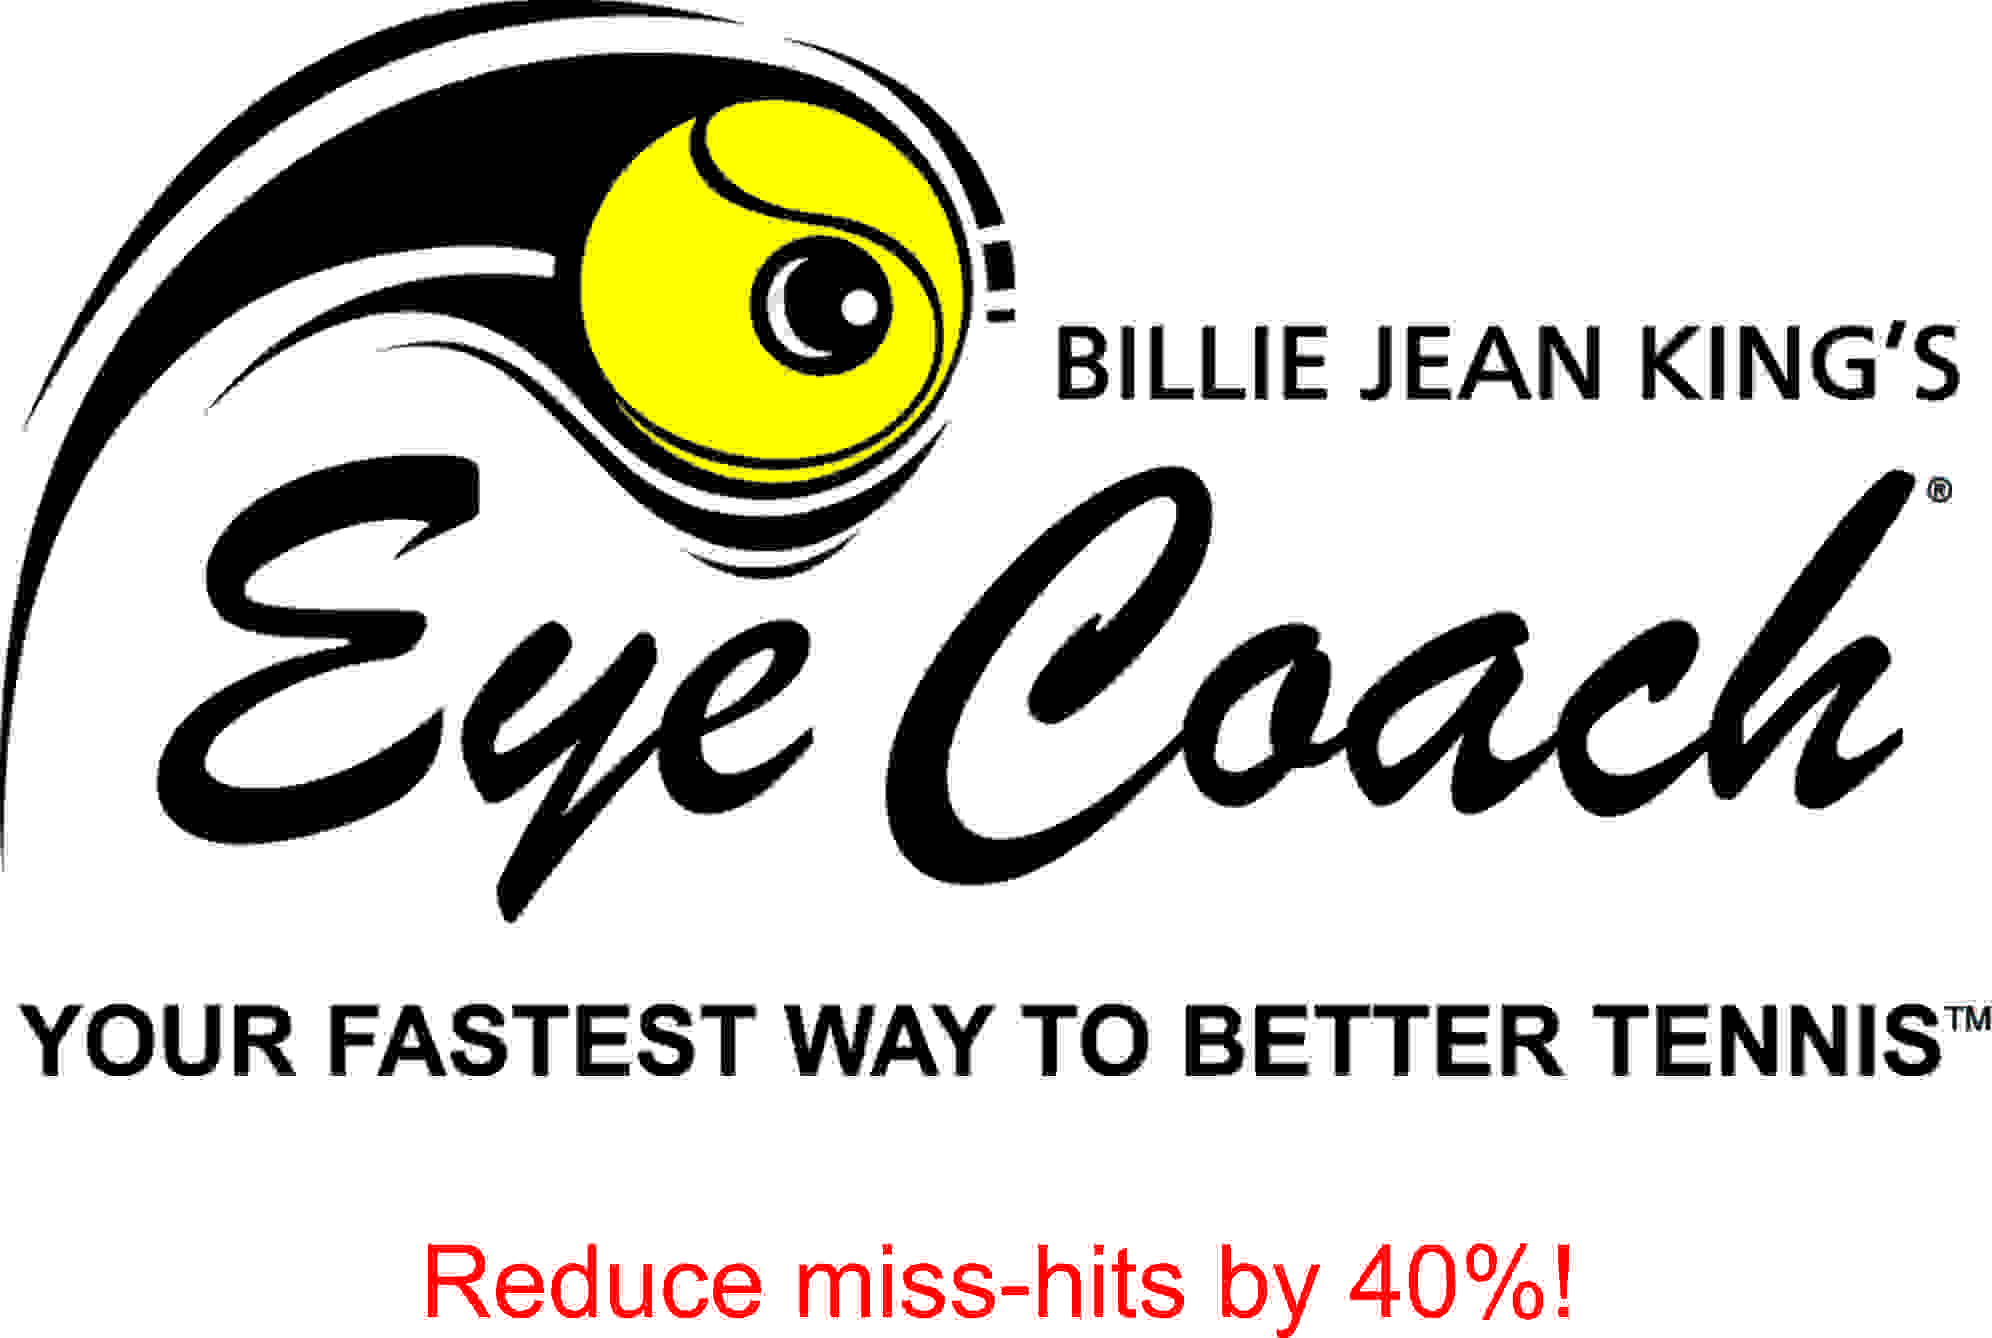 Eye Coach Landing Banner Miss-hits